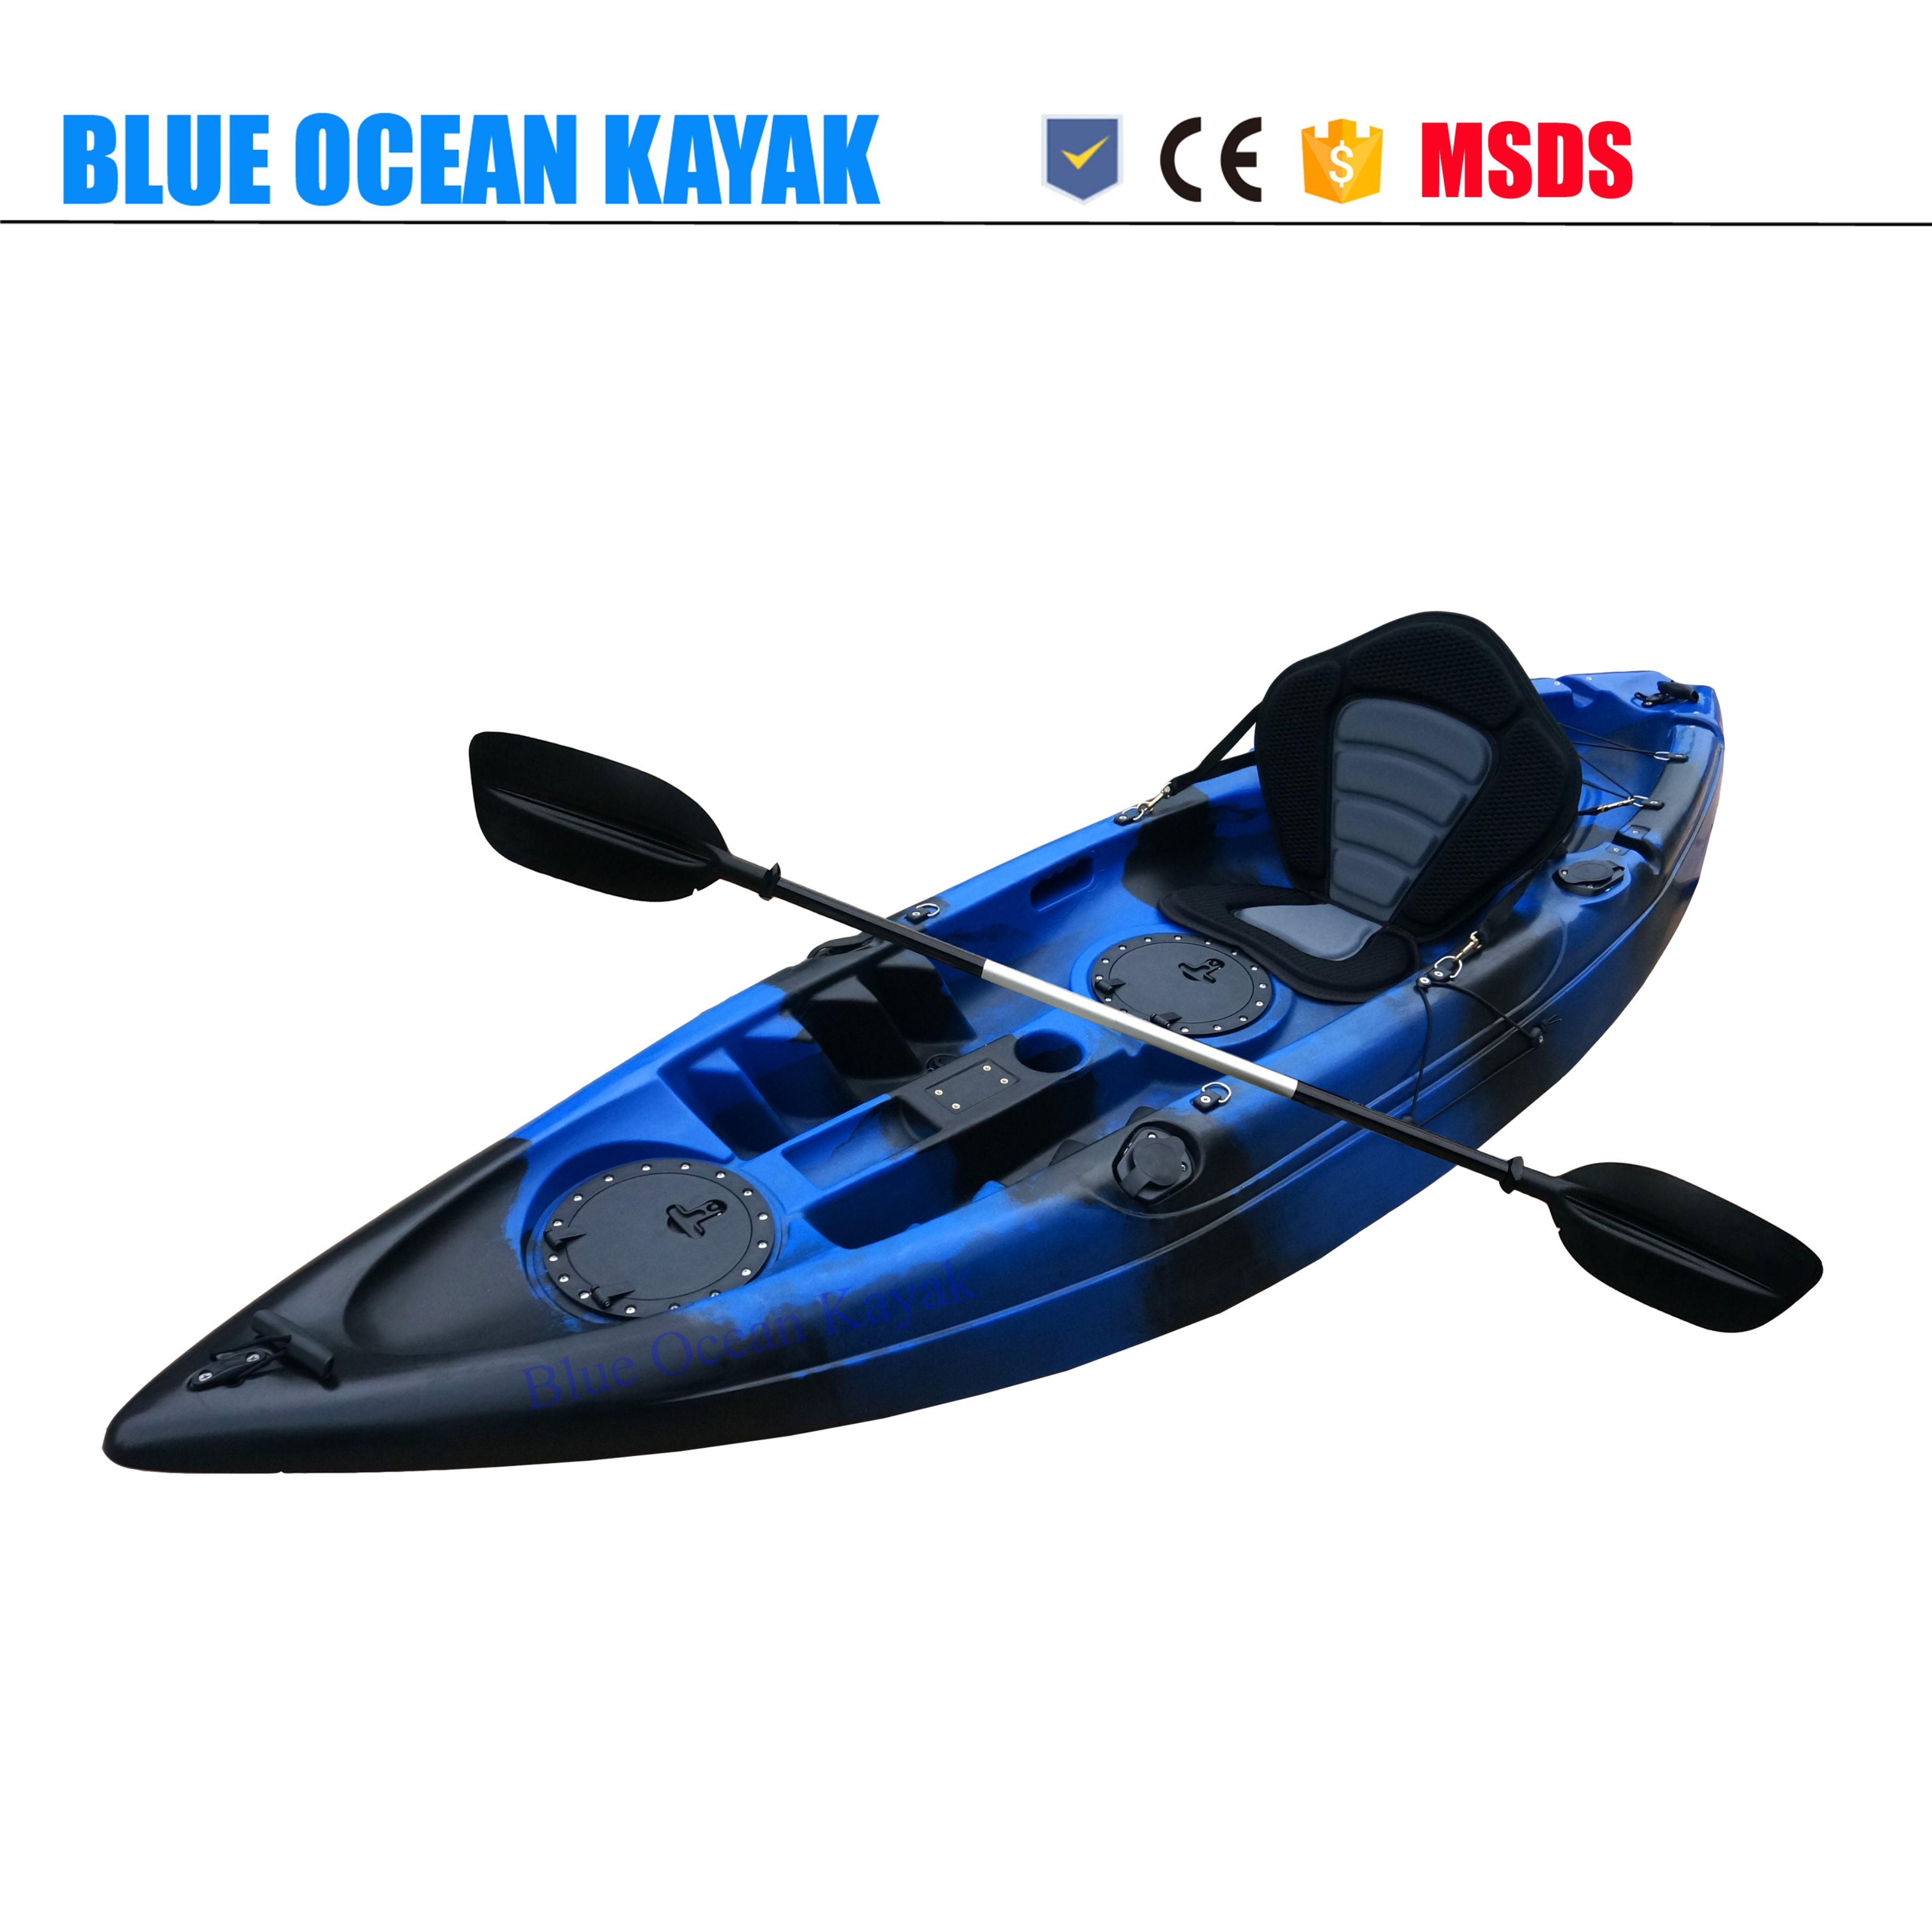 Tiefe blau fantasie Einzel Angeln <span class=keywords><strong>Kajak</strong></span>/Kanu/Boatwith <span class=keywords><strong>Motor</strong></span> halterung